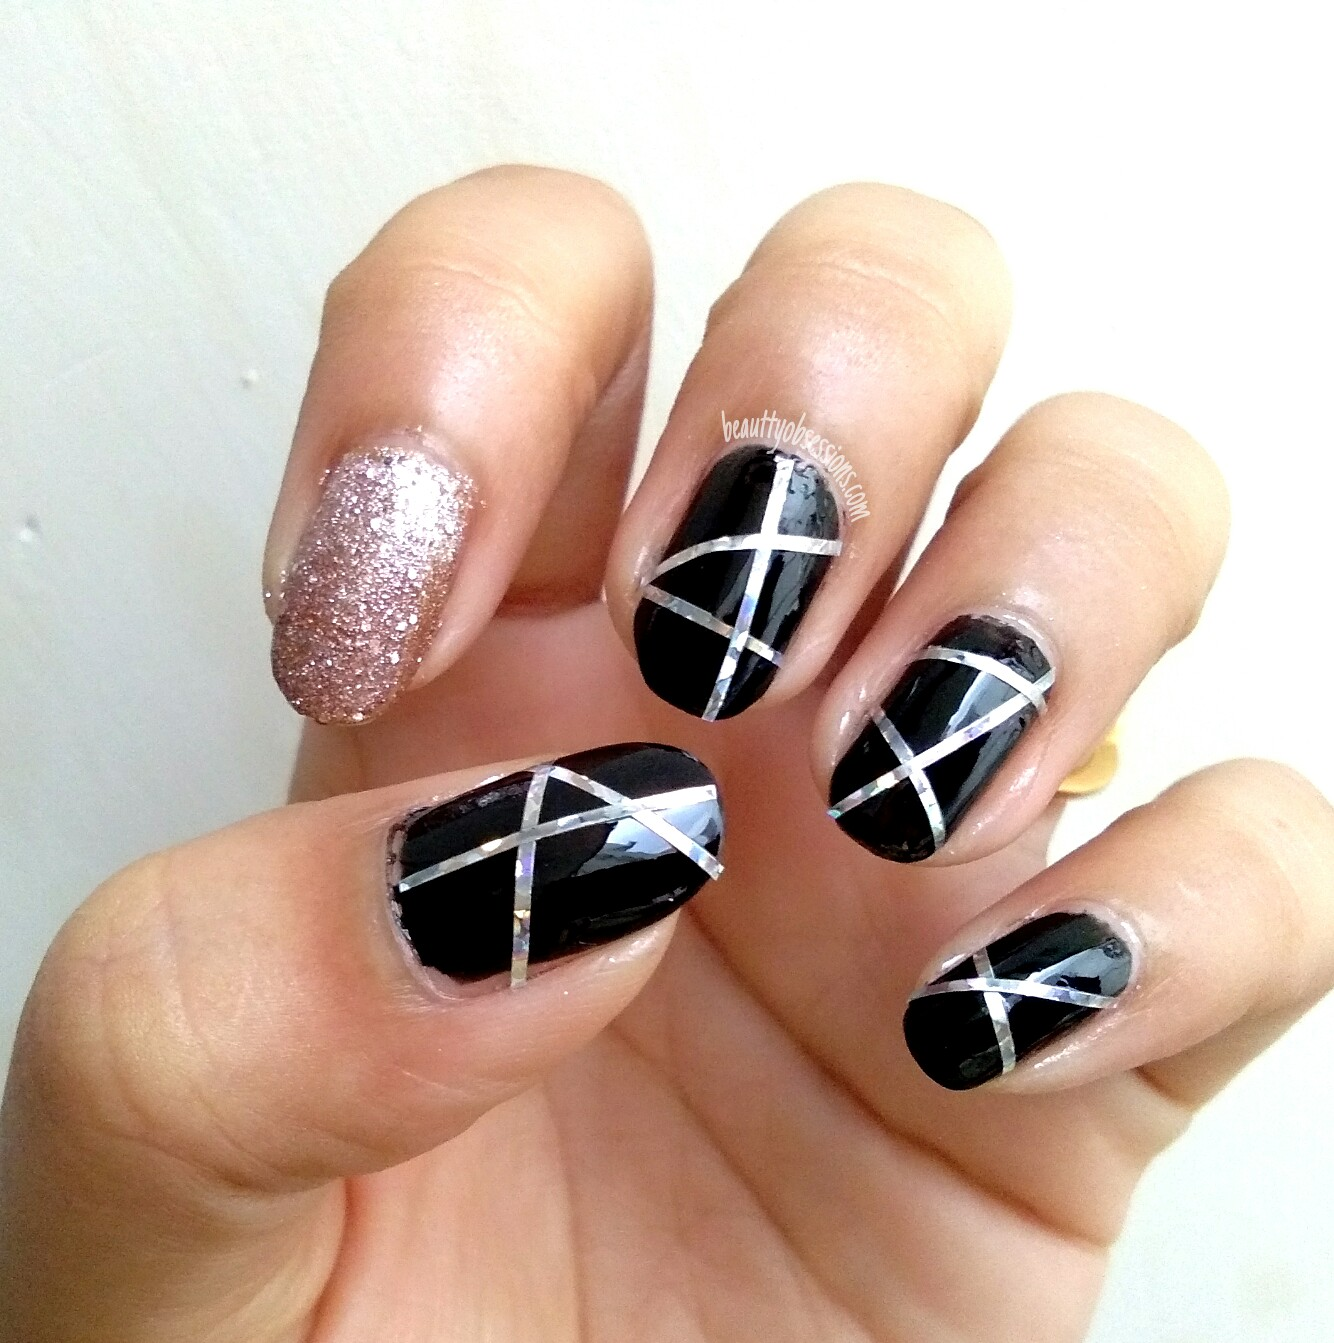 Two Easy Party Nails Ideas Using Nail Striping Tape | step ...